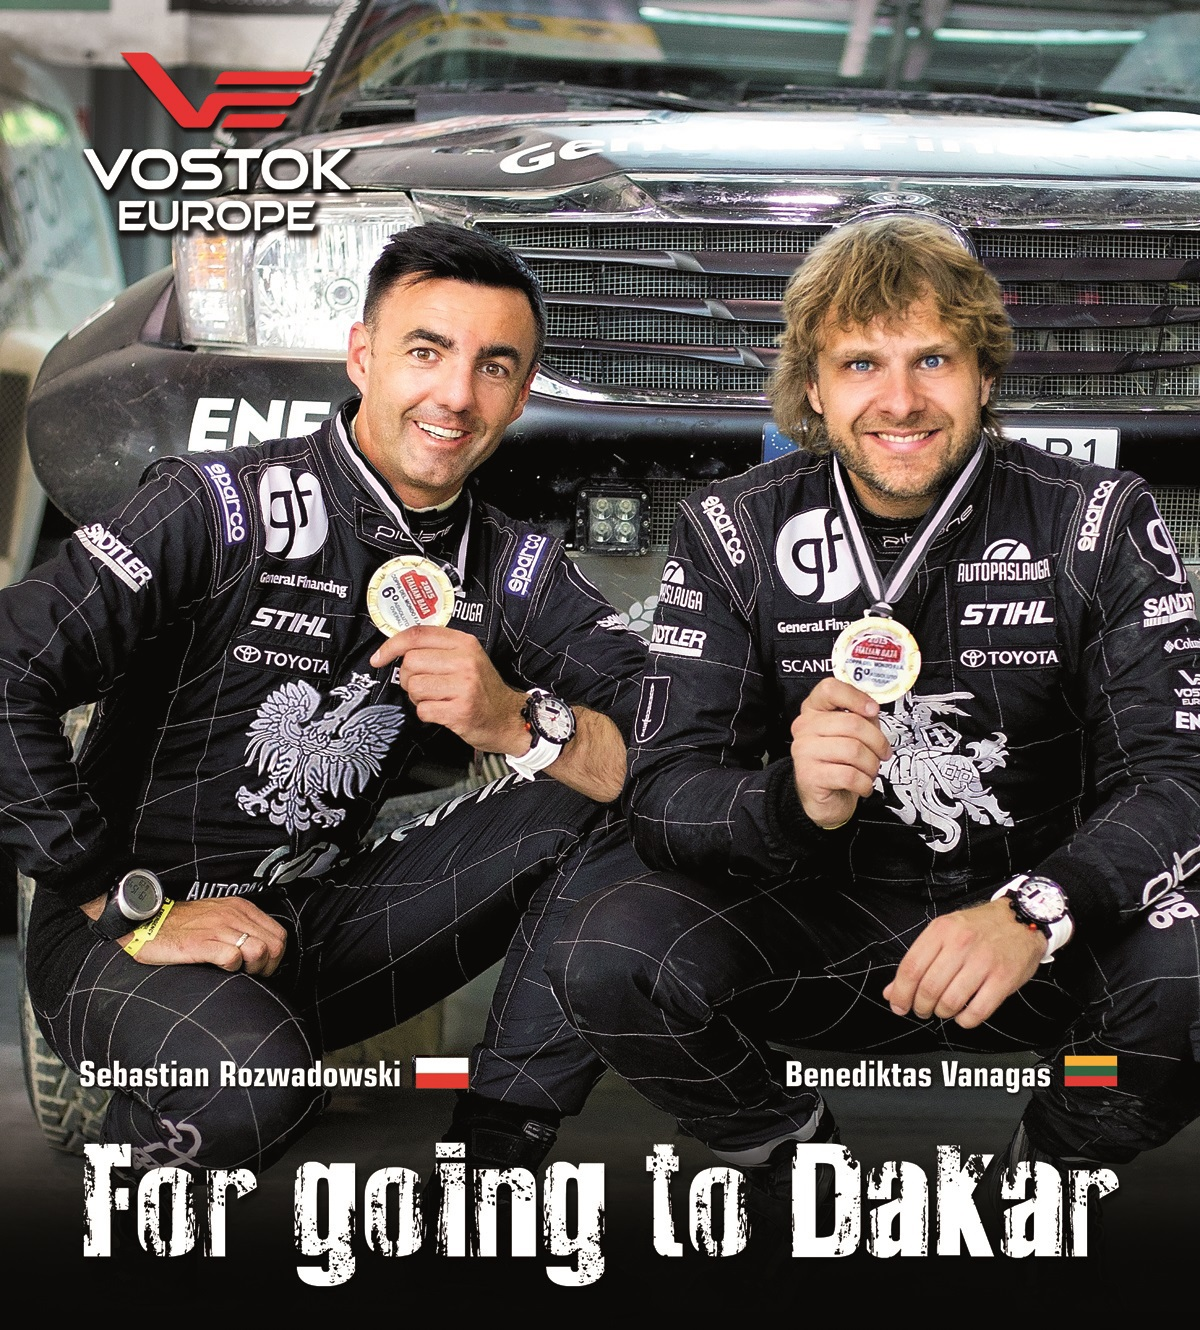 Going for Dakar Vostok Europe